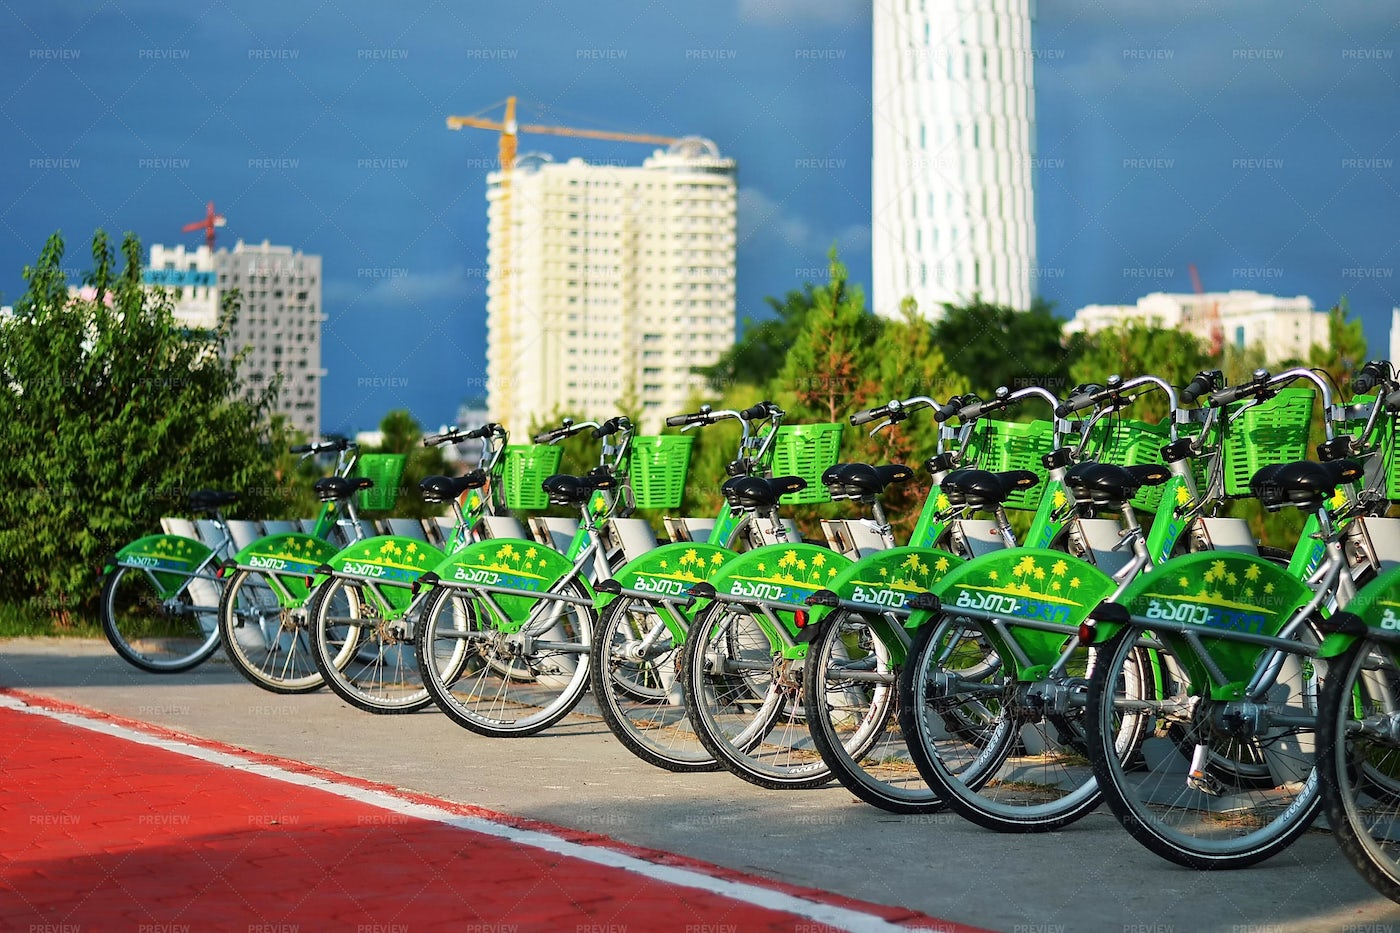 Bicycles Parked In Line: Stock Photos